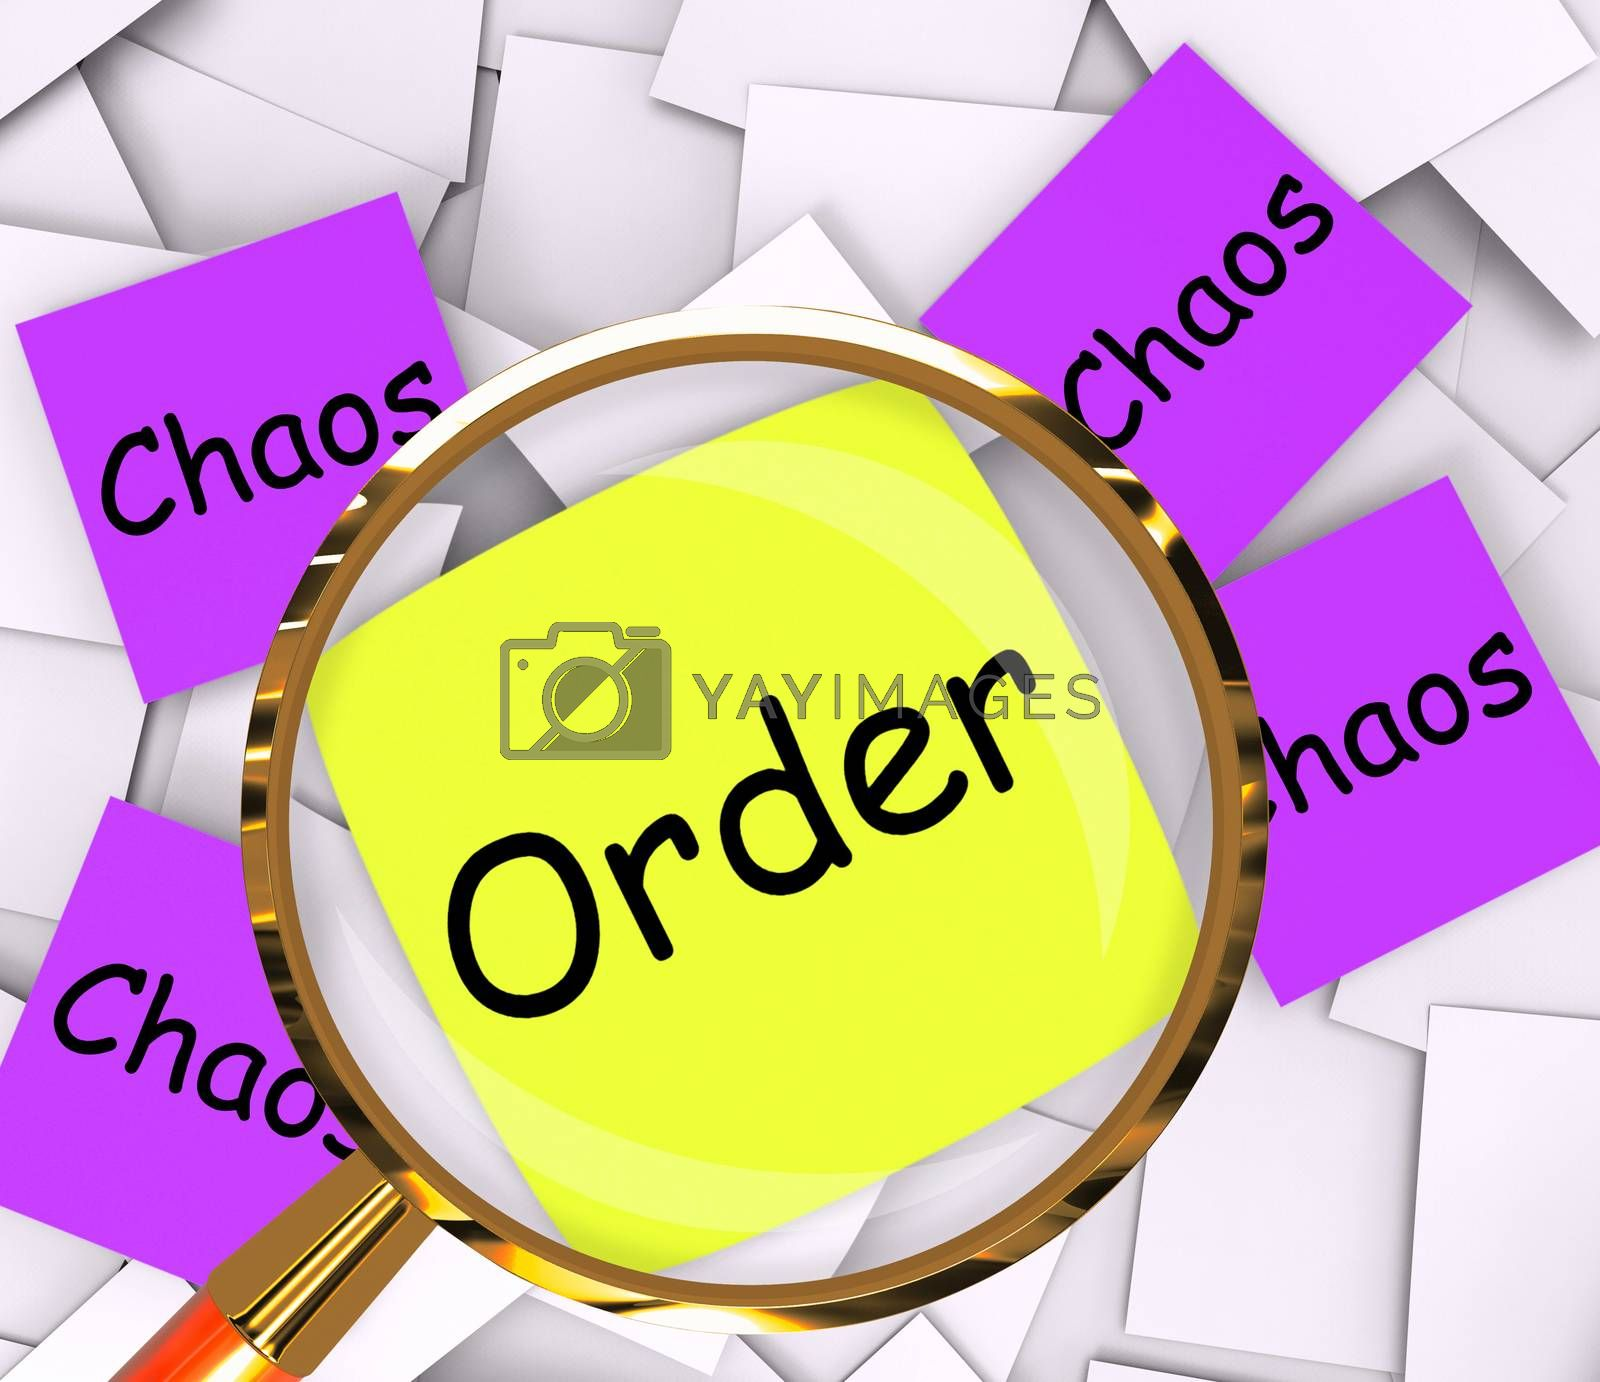 Order Chaos Post-It Papers Show Organized Or Confused by stuartmiles